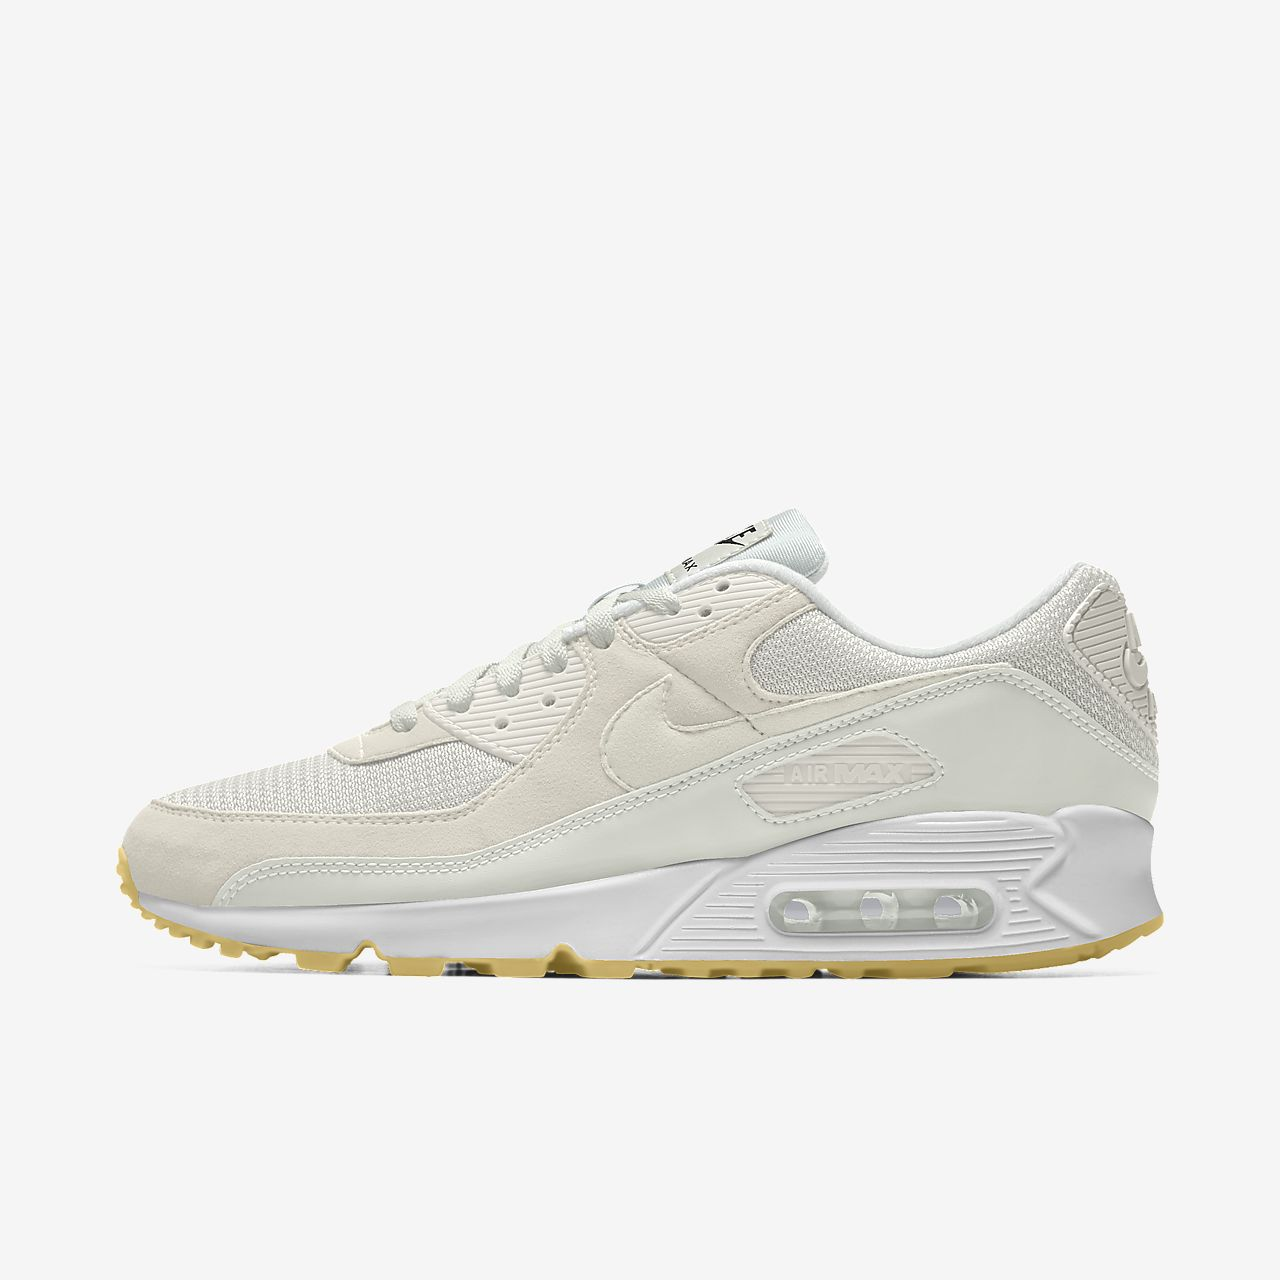 nike air max 95 trainers in off white with gum sole nz|Free